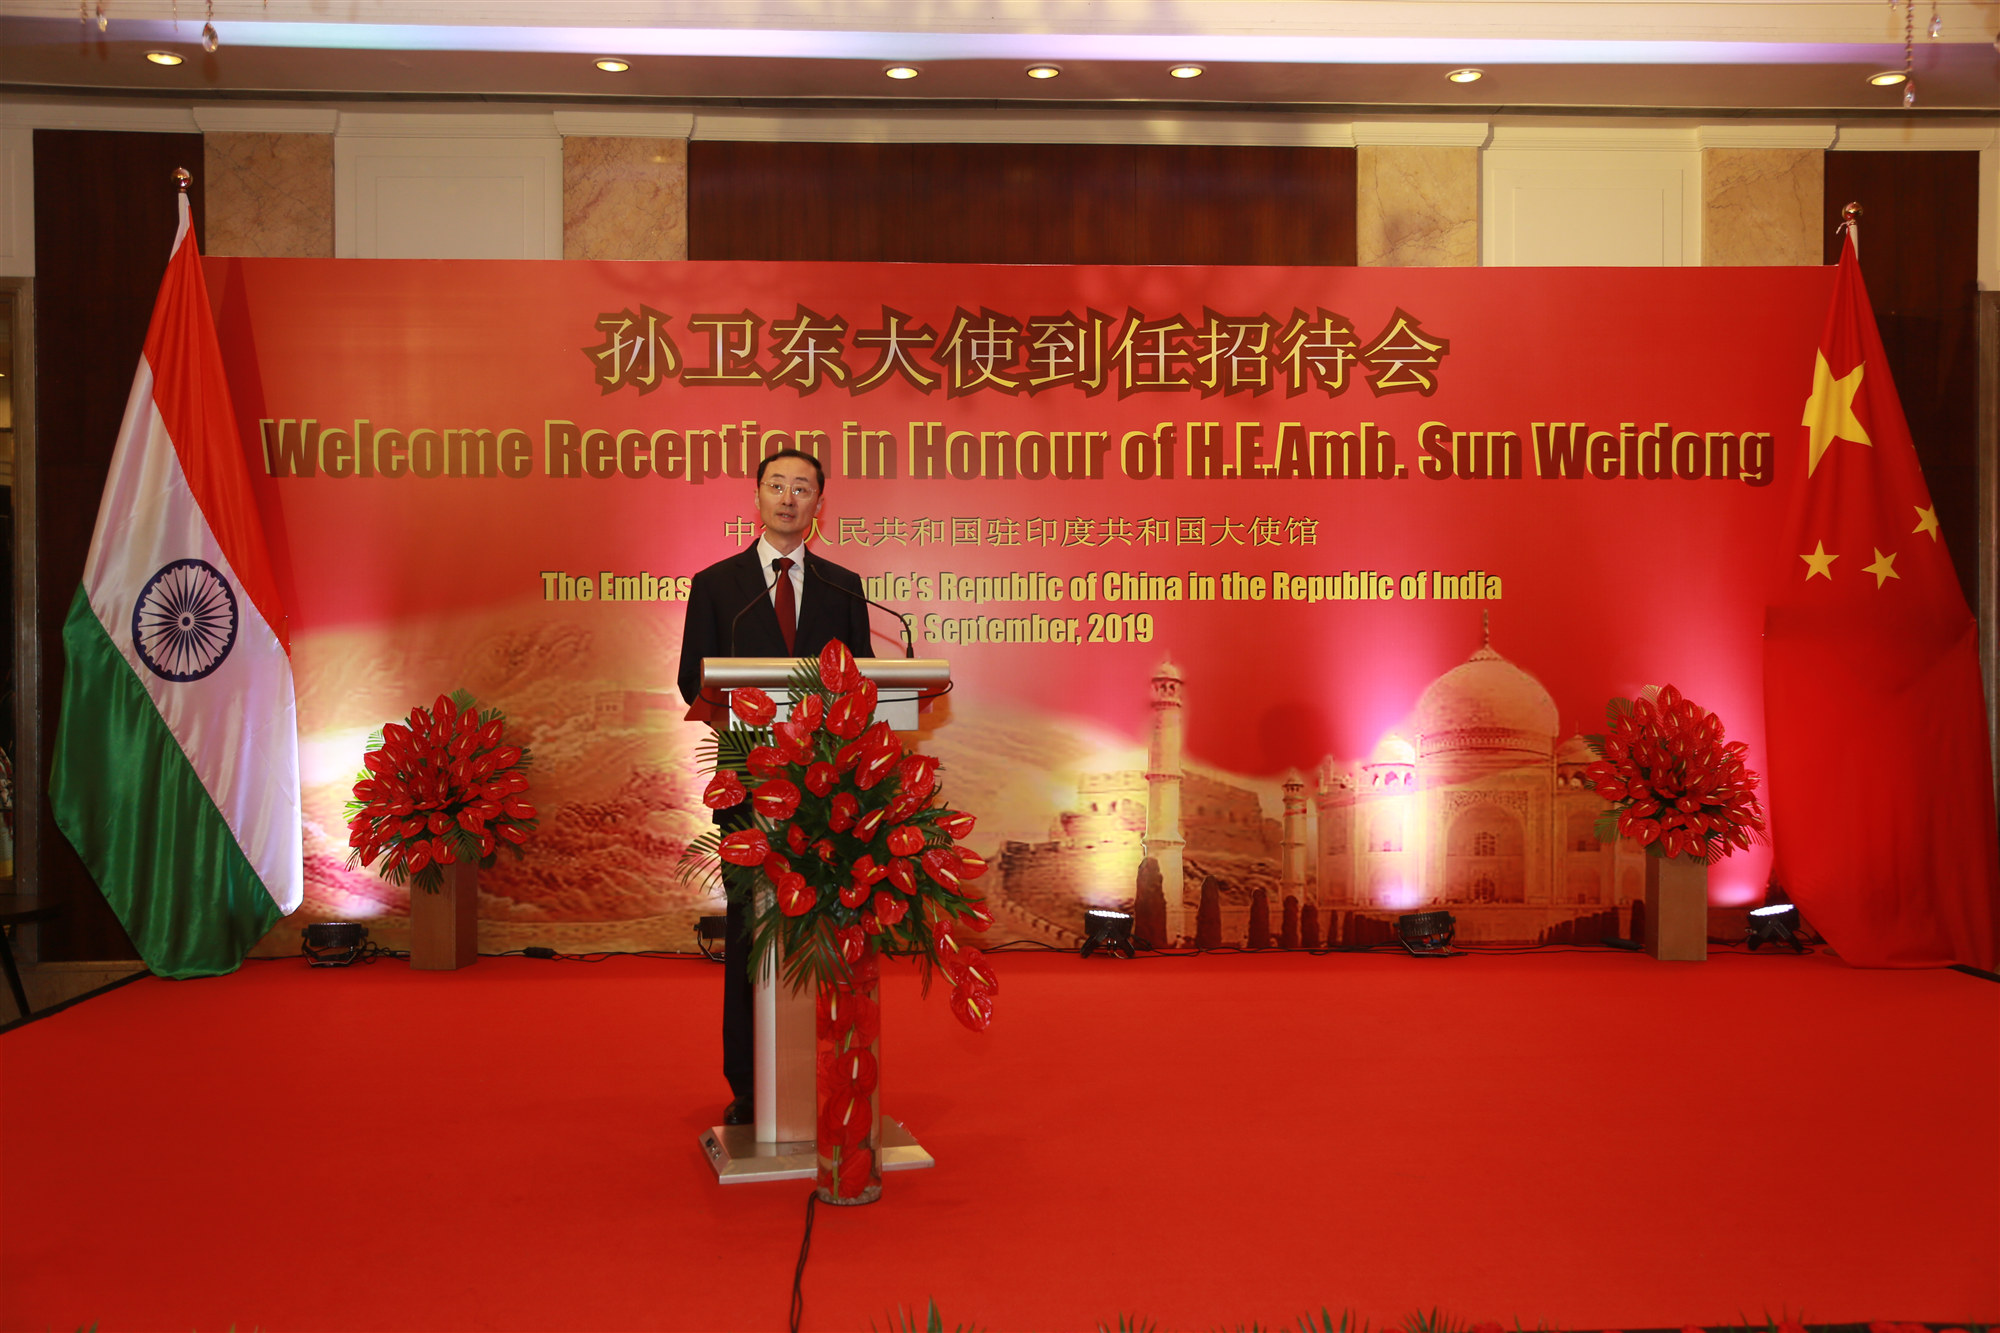 Remarks by Ambassador Sun Weidong at the Welcome Reception